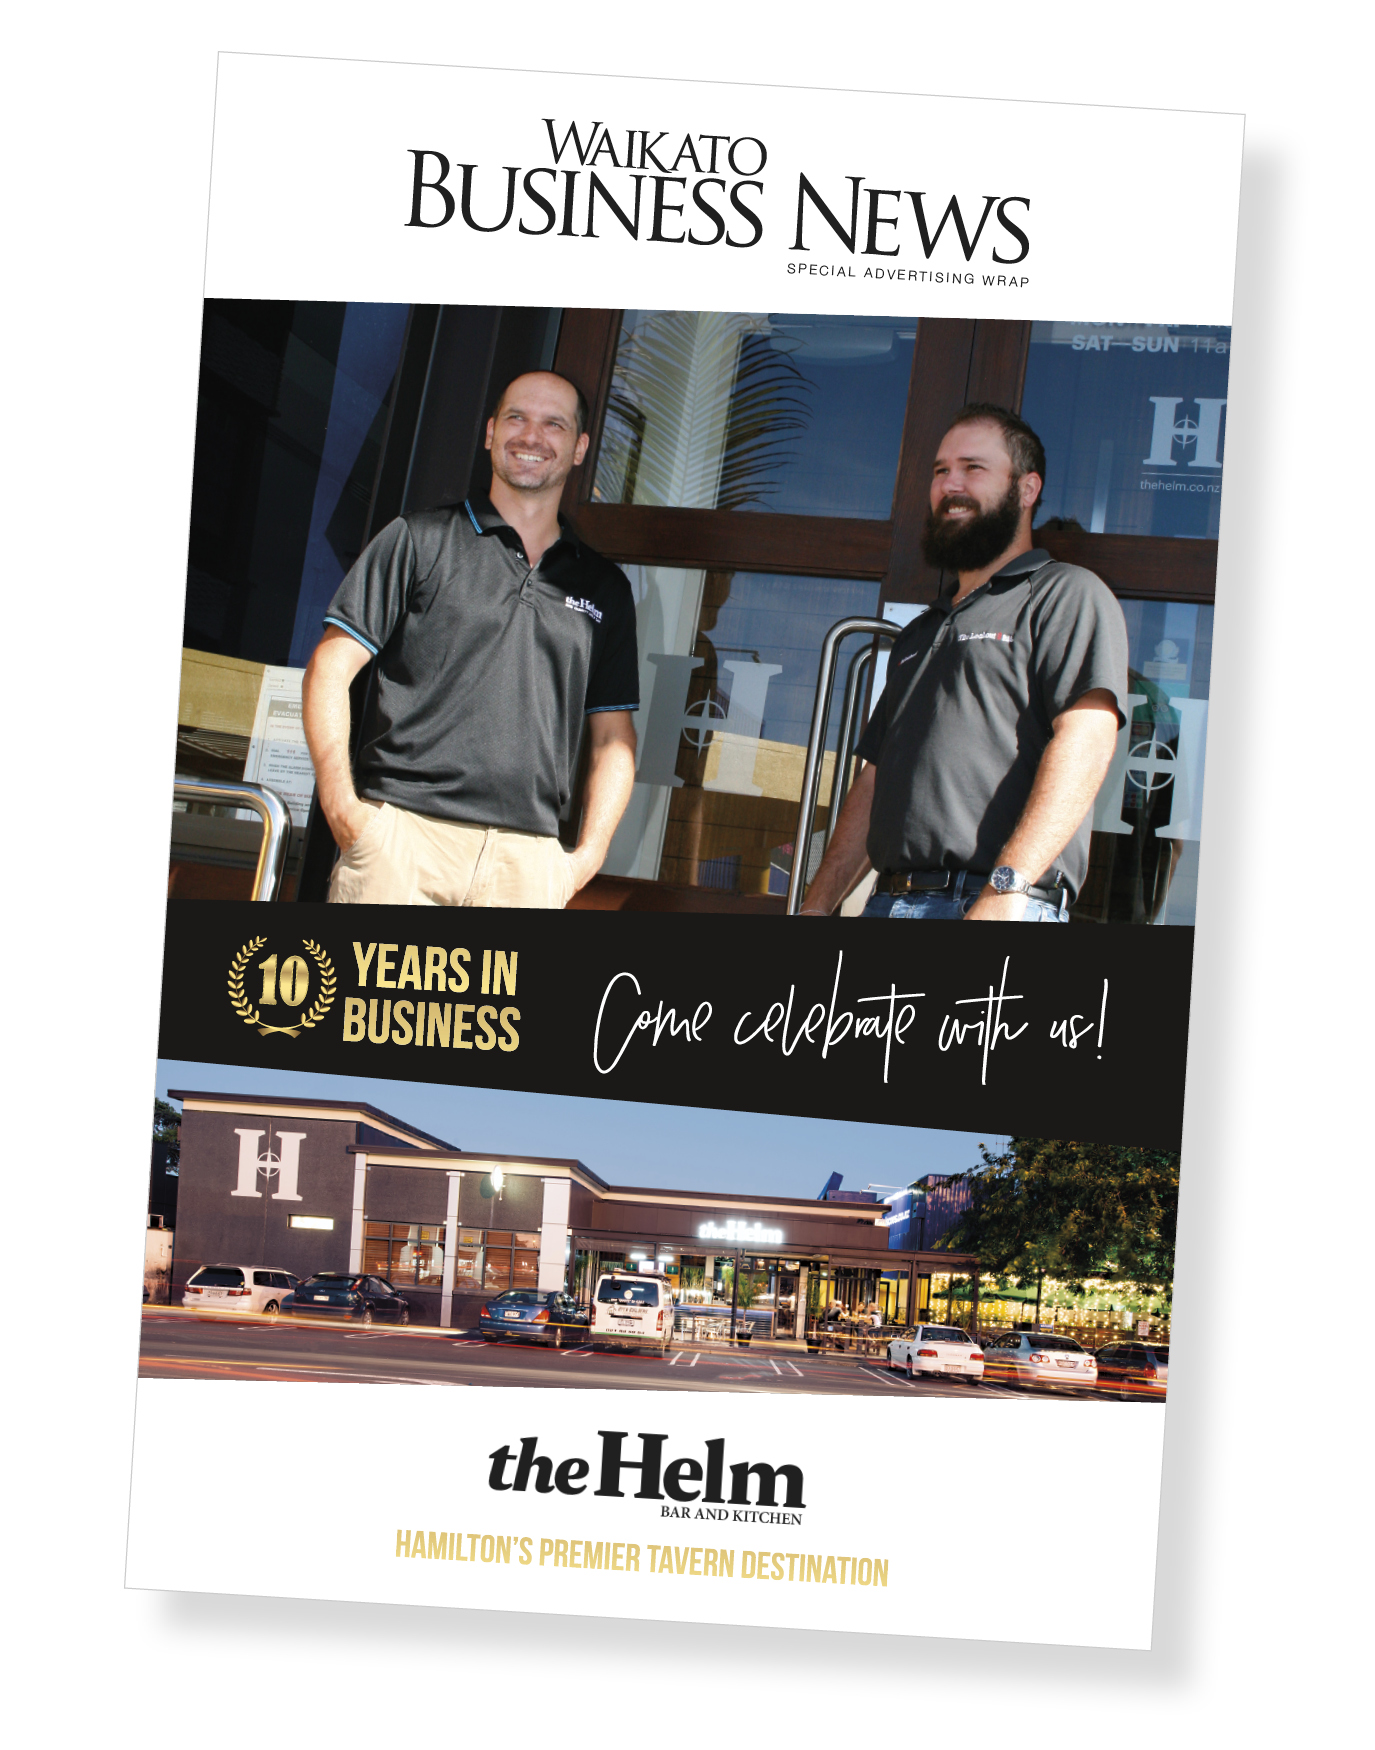 Waikato Business News March/April 2019